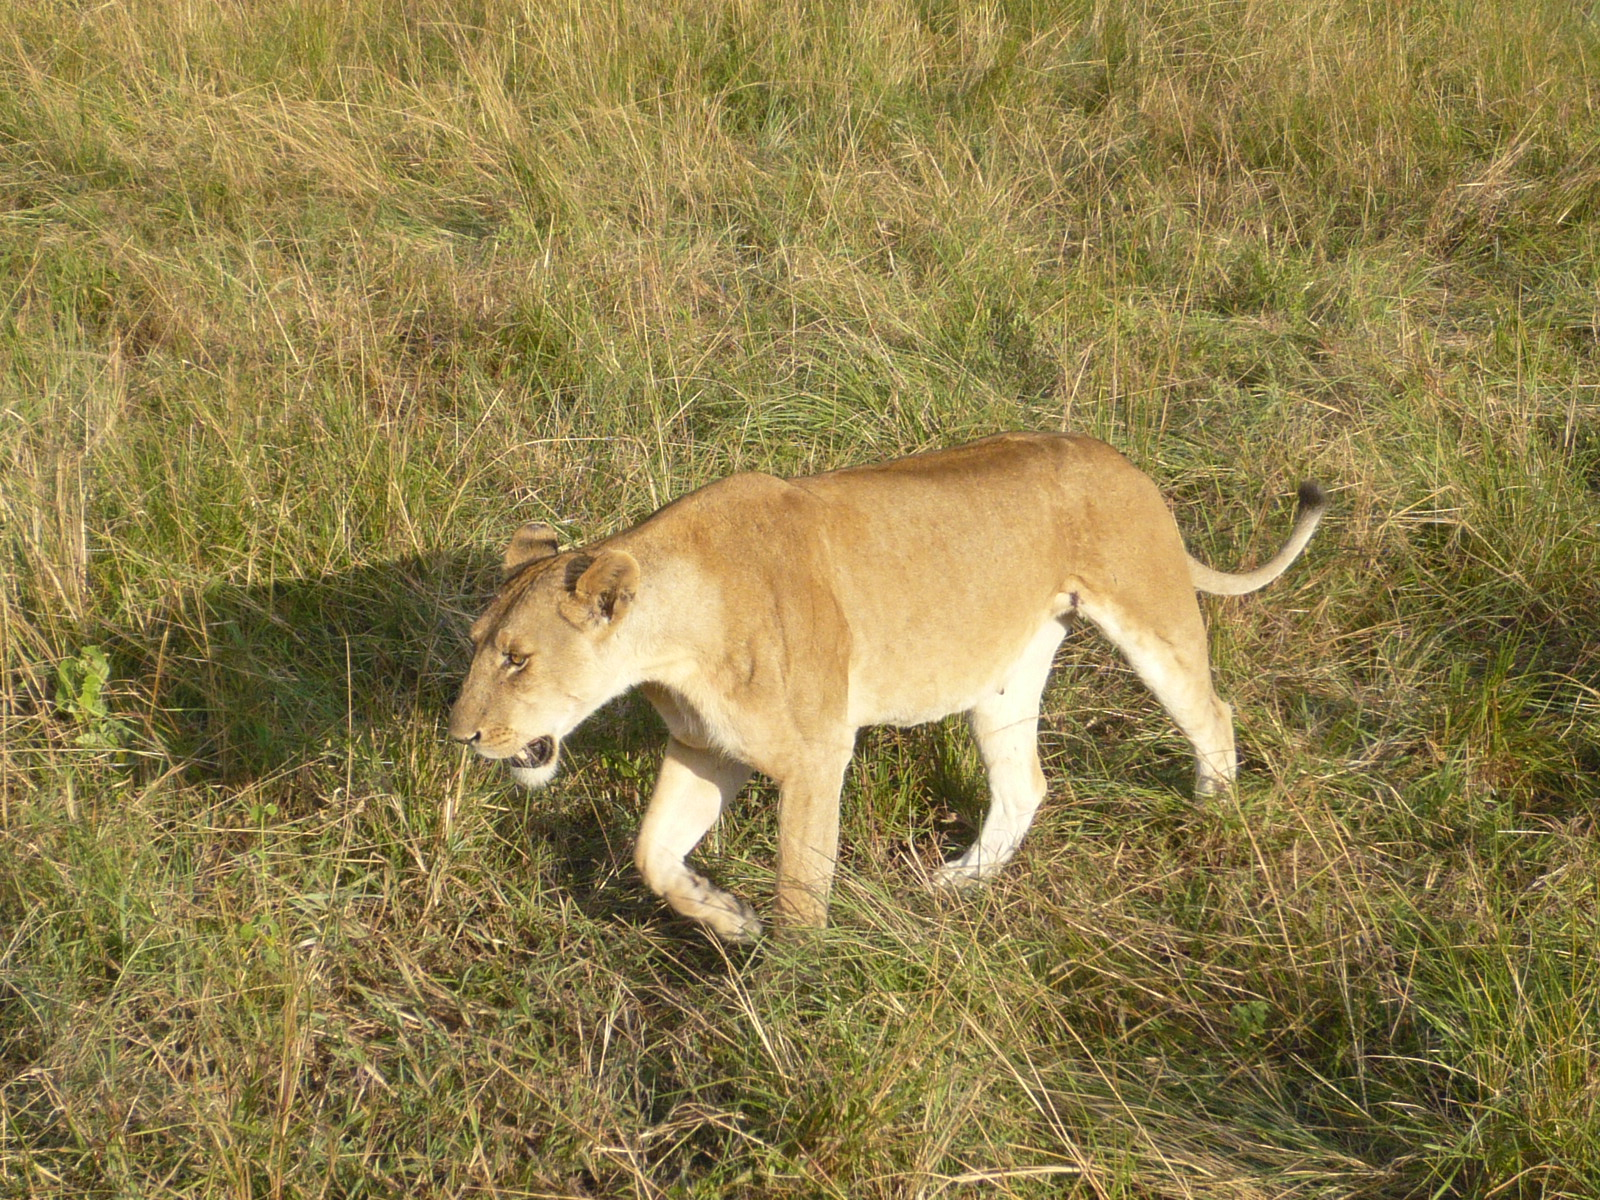 Lioness close to the vehicle